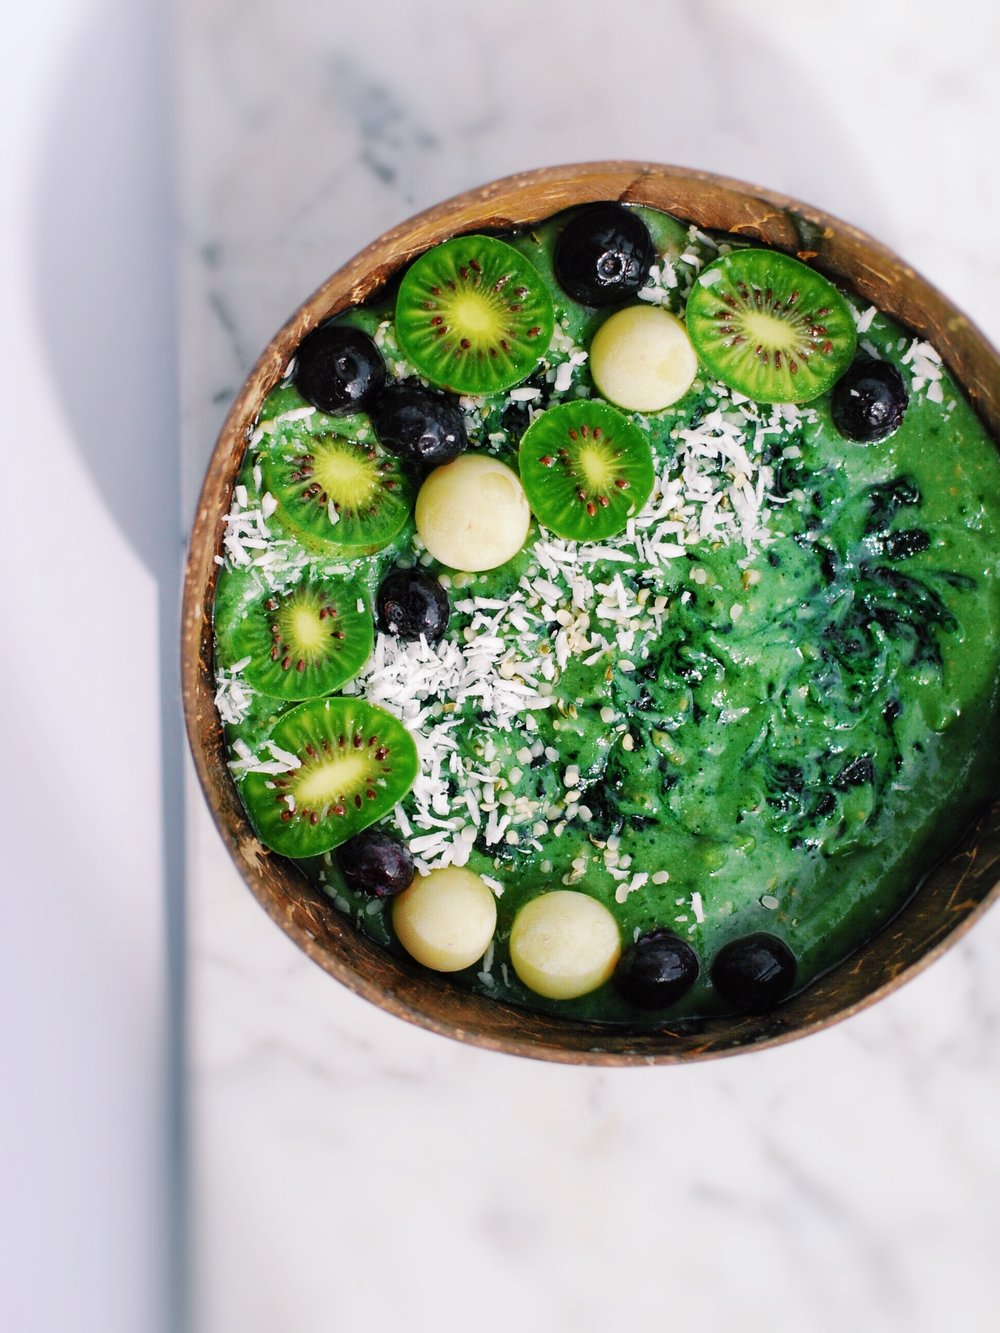 Pear, Spirulina, Spinach Smoothie Bowl - All about Spirulina (such an amazing superfood), but also why you don't NEED it to be healthy. Living well starts small. Small changes in your lifestyle, making changes to things that leave you feel energized and joy-filled, loving on others. Start there. Extras can come later!  - Foody First  - #wellness #healthy #smoothiebowl #smoothie #greens #eatyourgreens #raw #paleo #vegan #plantbased #spirulina #whole30 #nutritiontips #nutrition #glutenfree